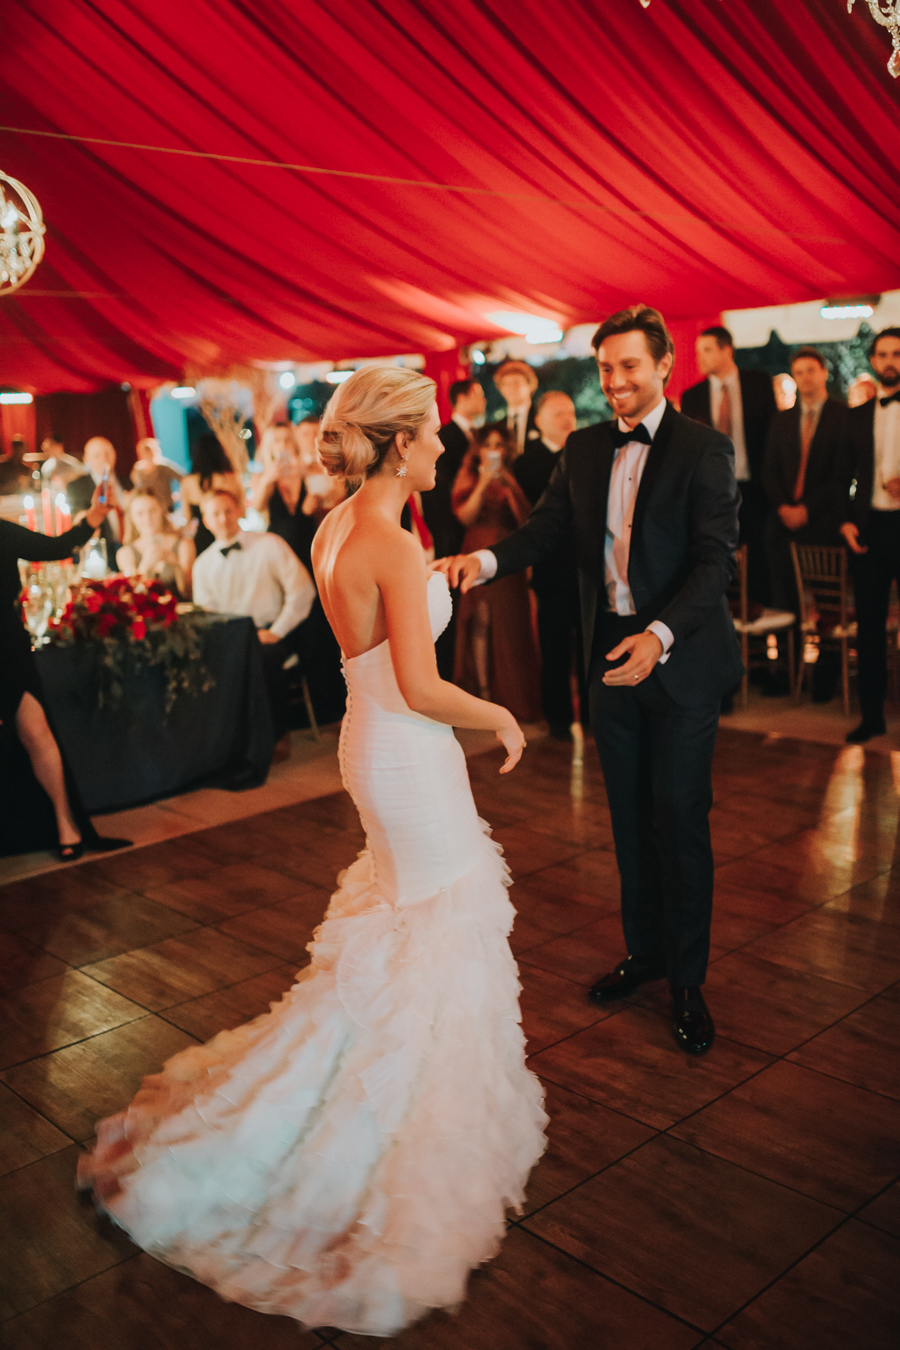 Loren and Alex Kuznetsov Gold and Burgundy wedding at Epicurean Tampa Royal Fall Wedding in Tampa Florida Inside Weddings MD Events Tampa-136.jpg